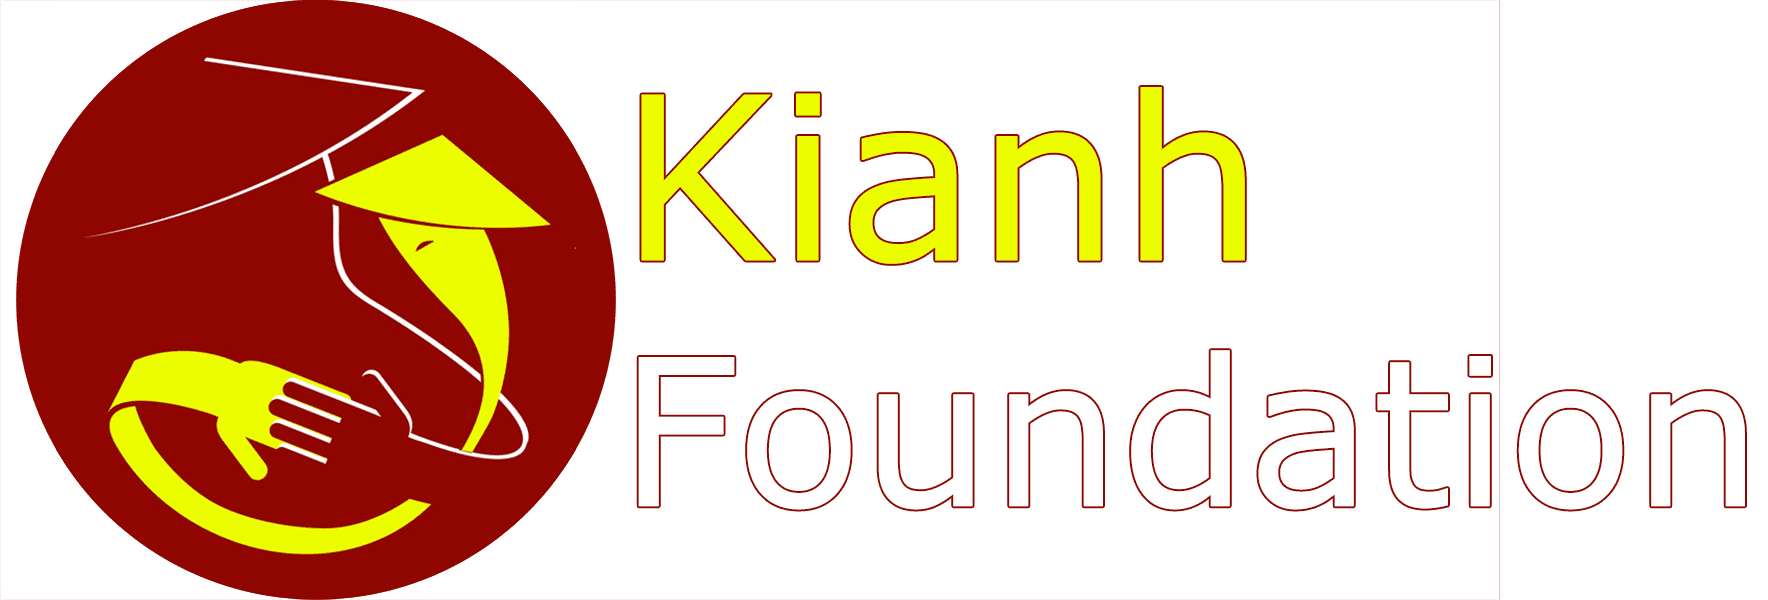 The Kianh Foundation